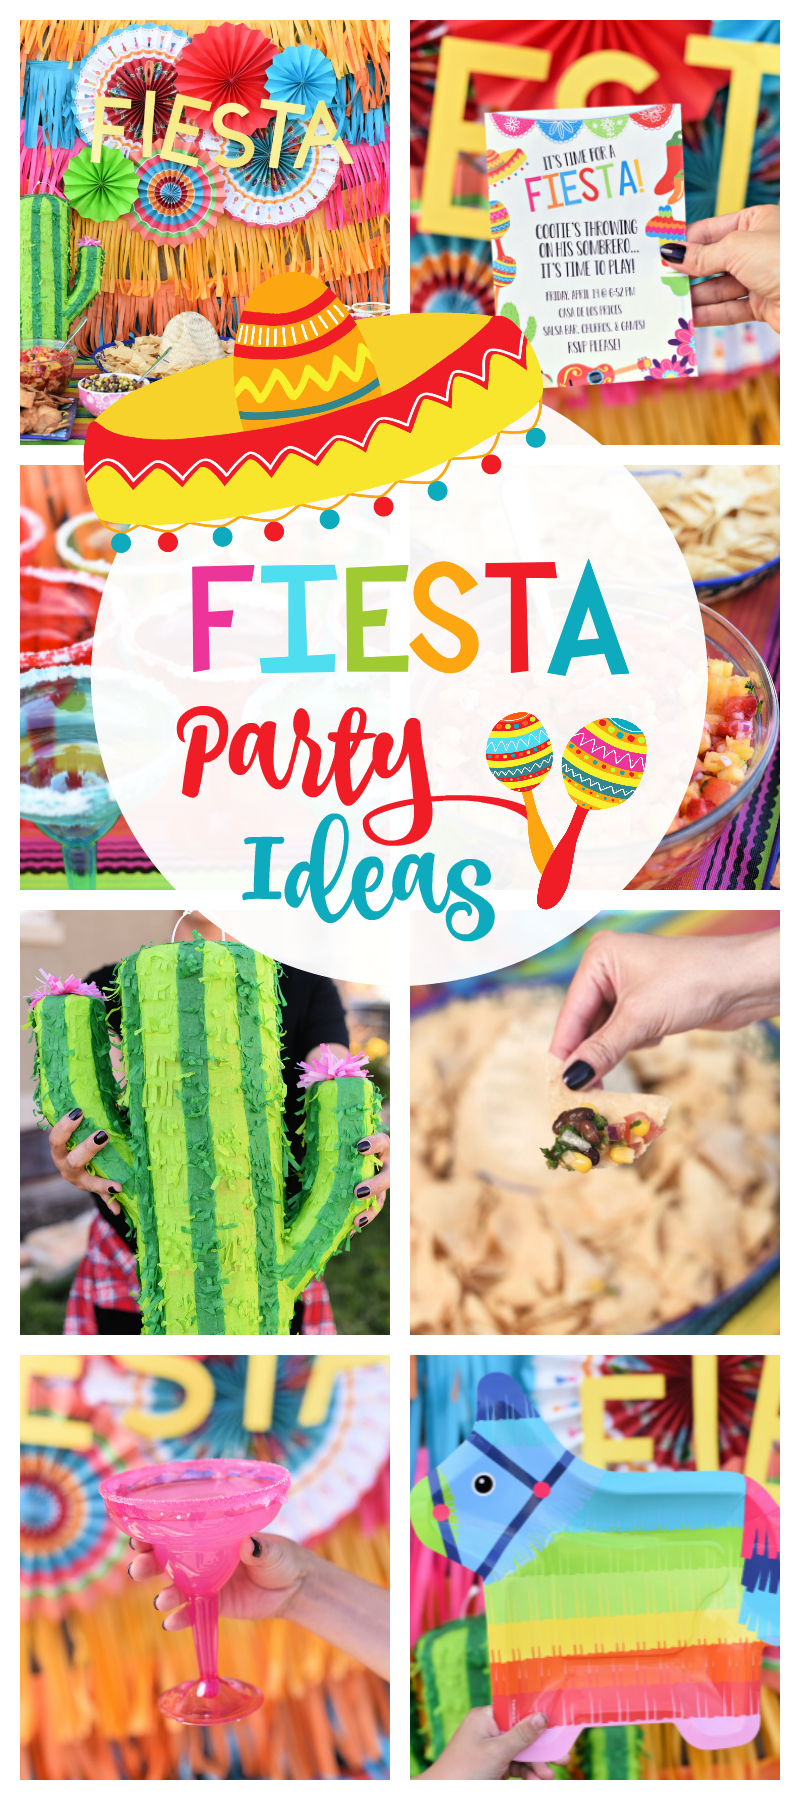 Mexican Themed Party Ideas-Looking for Fiesta party ideas? These fun fiesta invitations, food ideas and decorations will help you throw the best Fiesta ever! #fiesta #partyideas #party #mexicanparty #fiestaideas